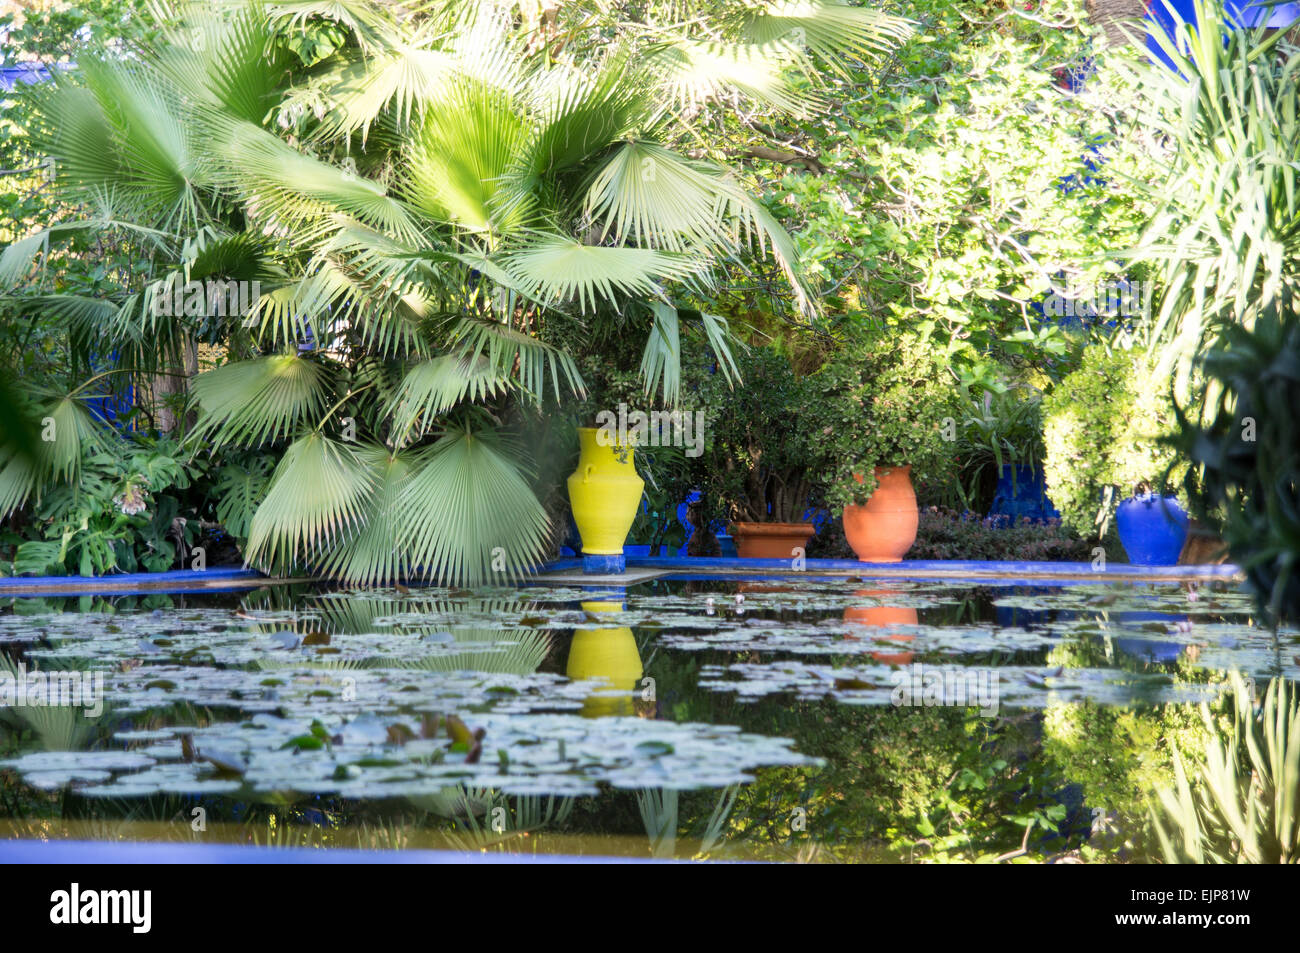 Jardin Ysl Marrakech Of Yves Saint Laurent Memorial In The Majorelle Gardens In